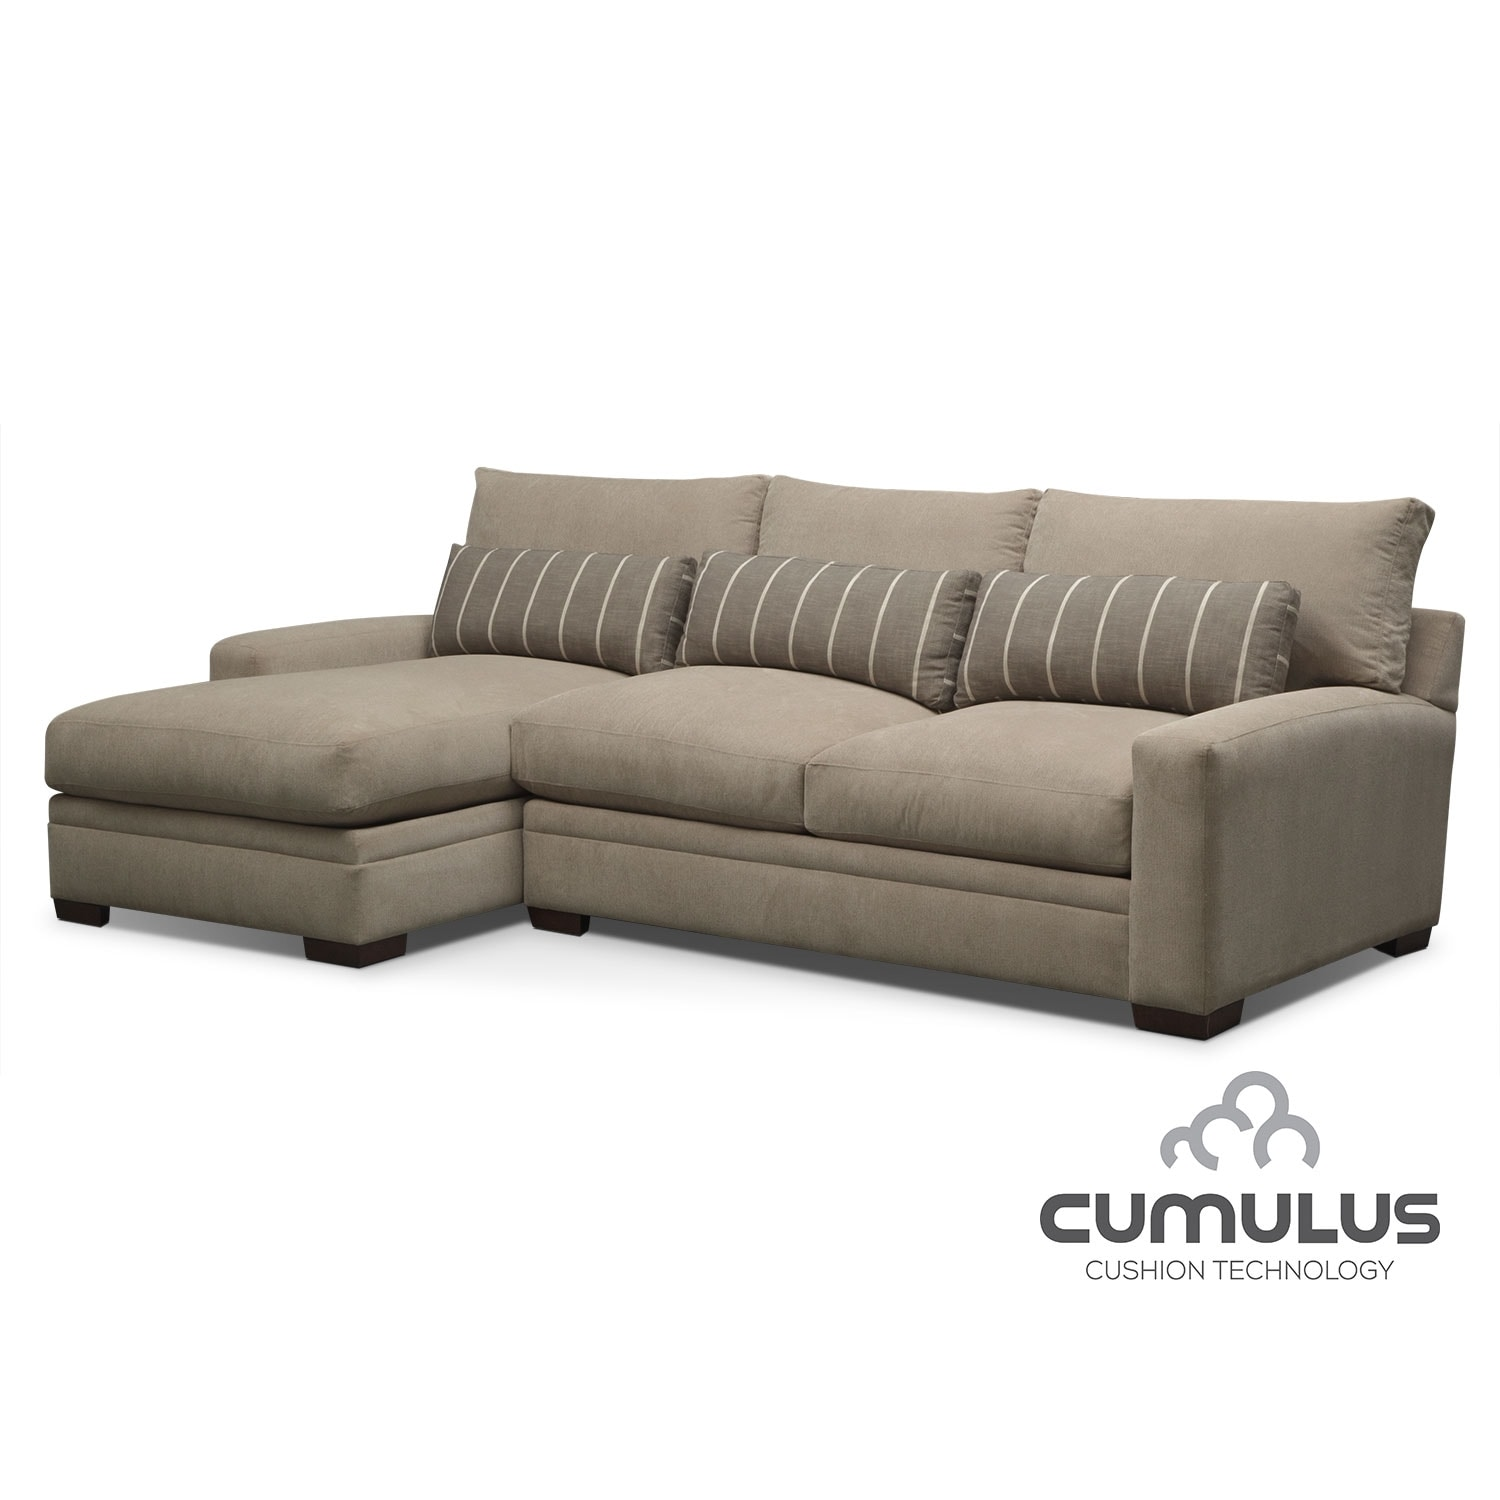 Ventura 2-Piece Left-Facing Sectional - Buff